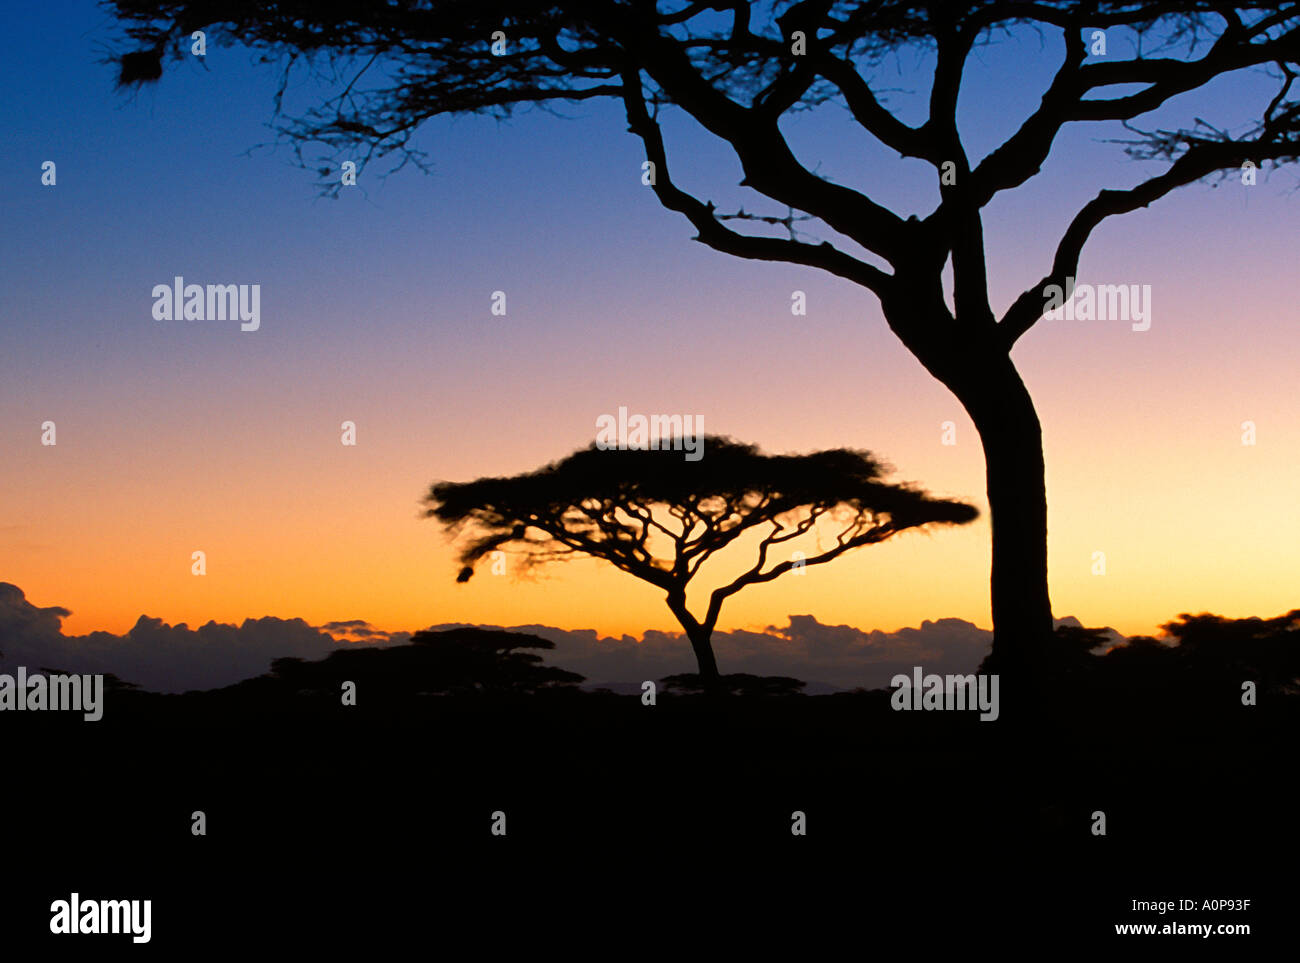 Acacia trees in the Serengeti National Park, Tanzania, Africa - Stock Image